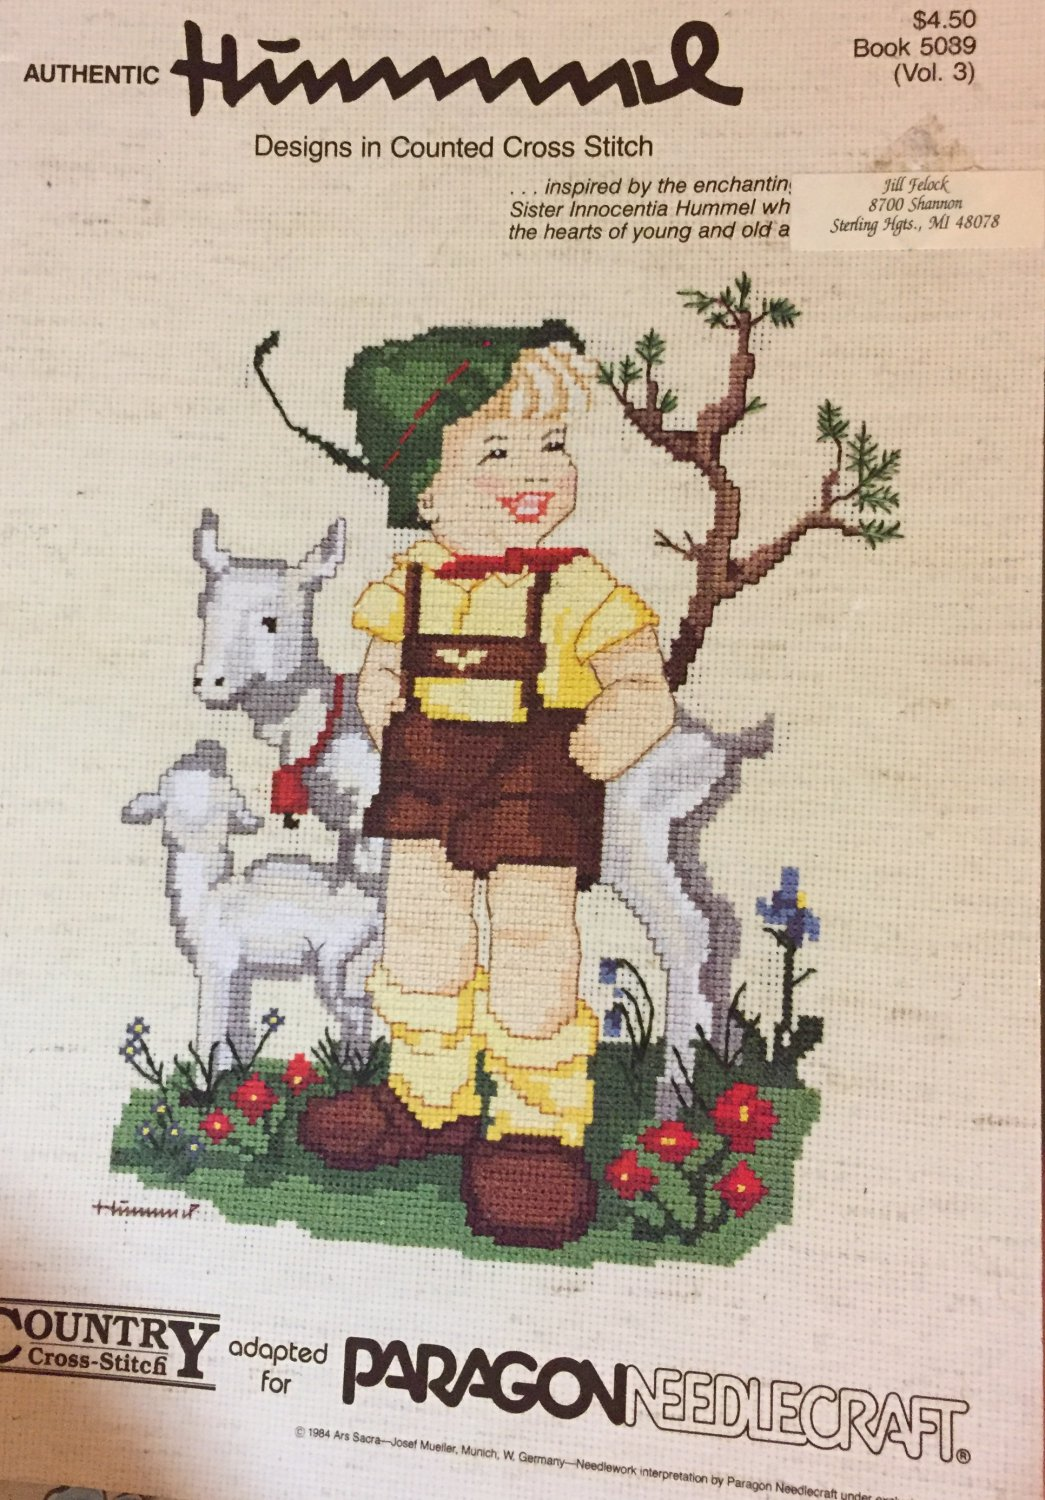 Hummel Designs in Counted Cross Stitch from Paragon